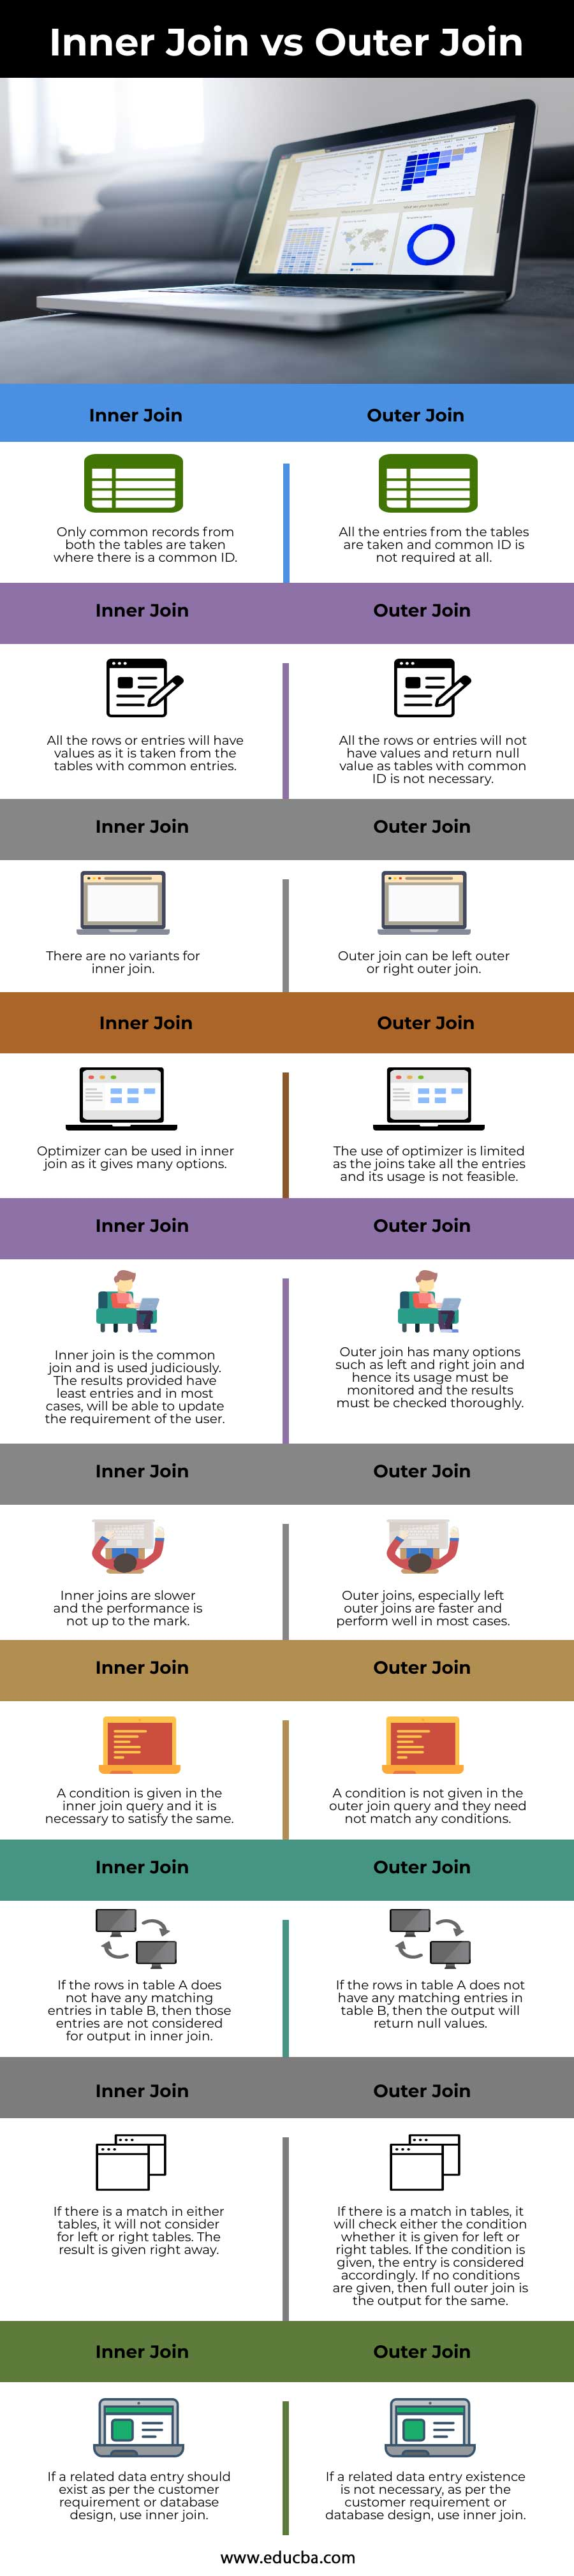 Inner Join vs Outer Join info